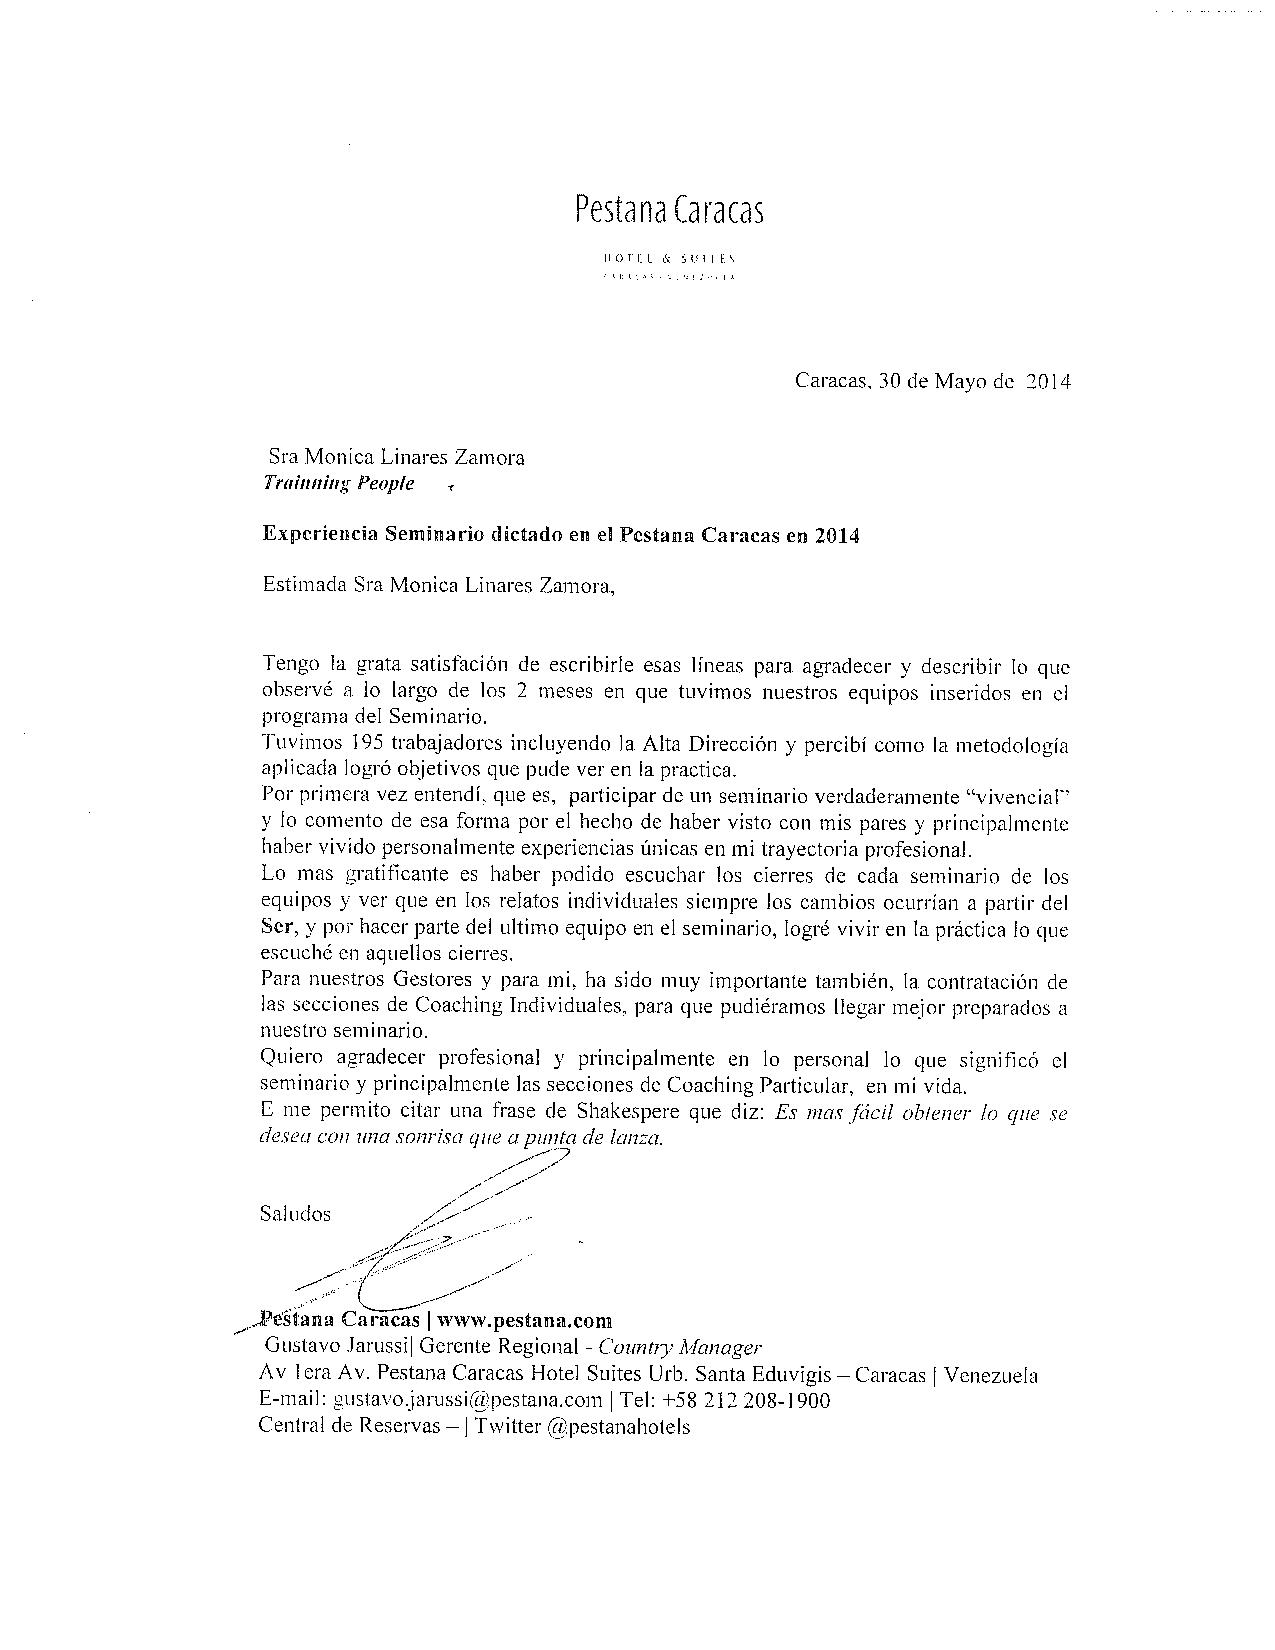 25 REFERENCIA PESTANA CARACAS 2 - Carta